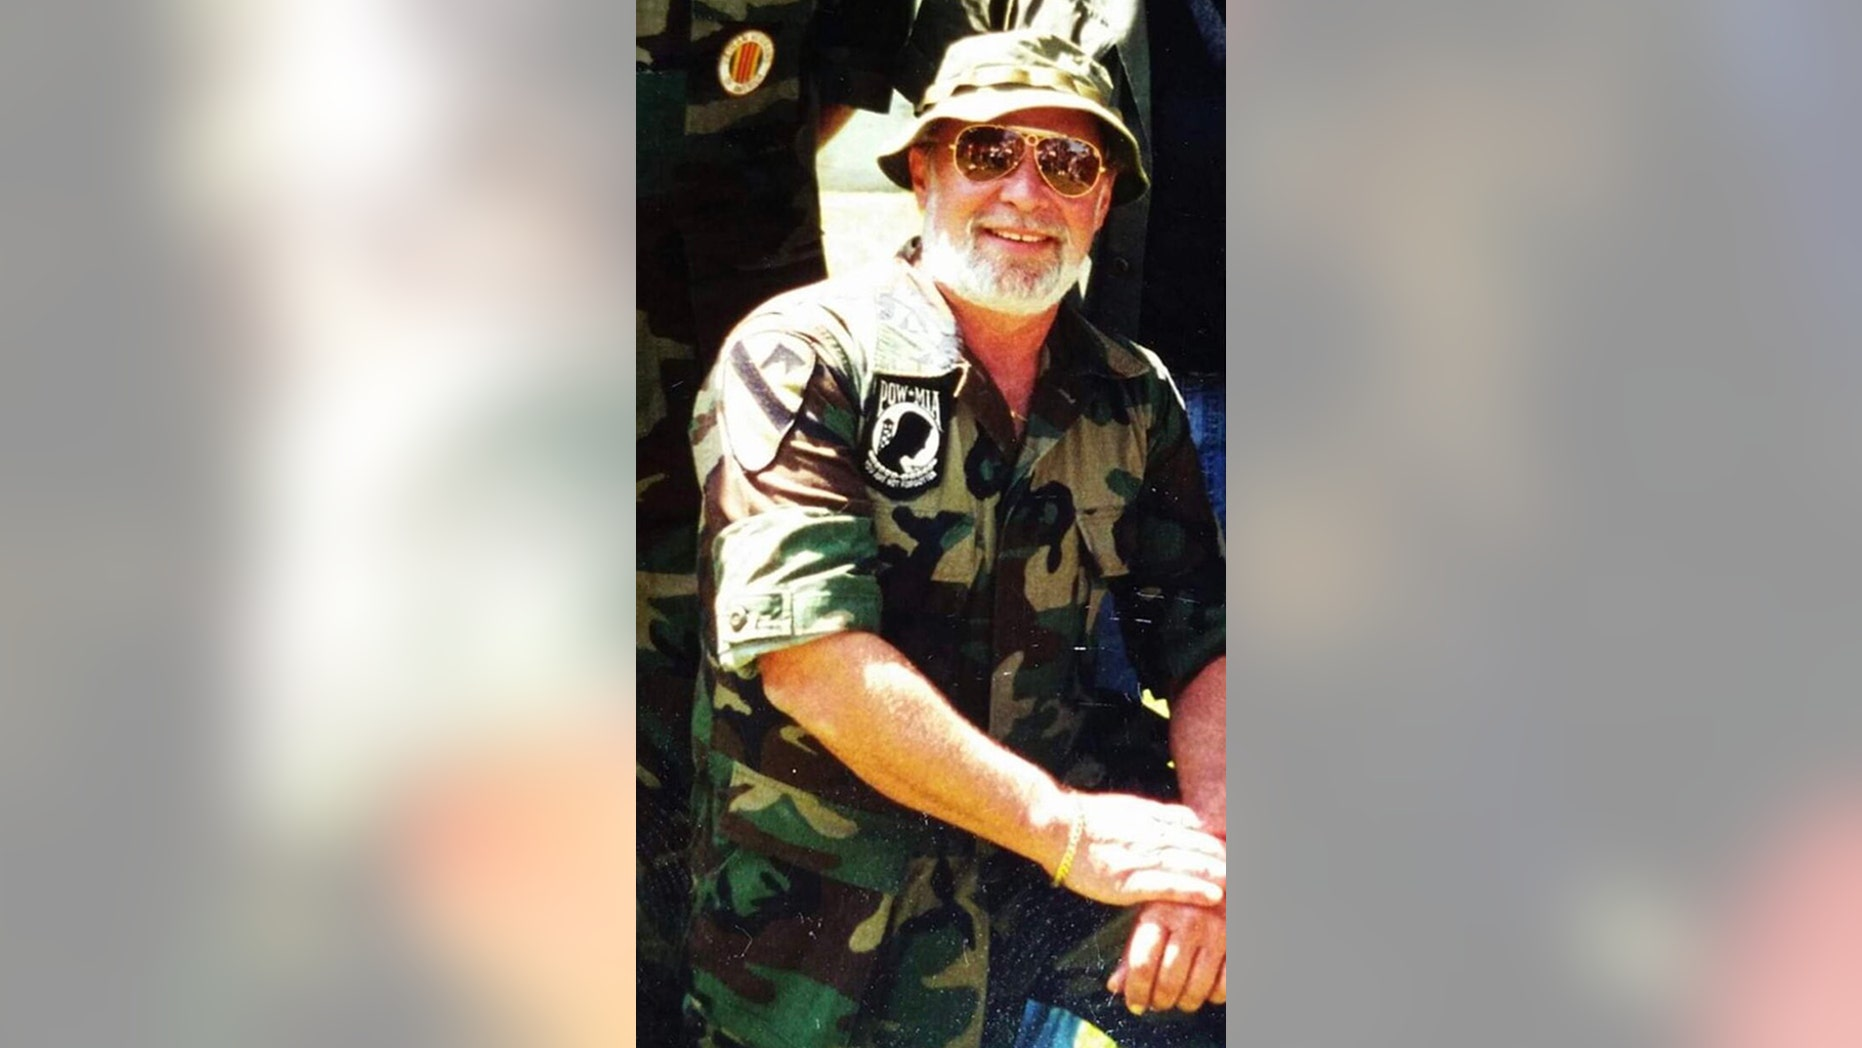 Duane Downey, a 71-year-old Vietnam war veteran who survived being shot seven times, died in a fire at his rural Georgia home